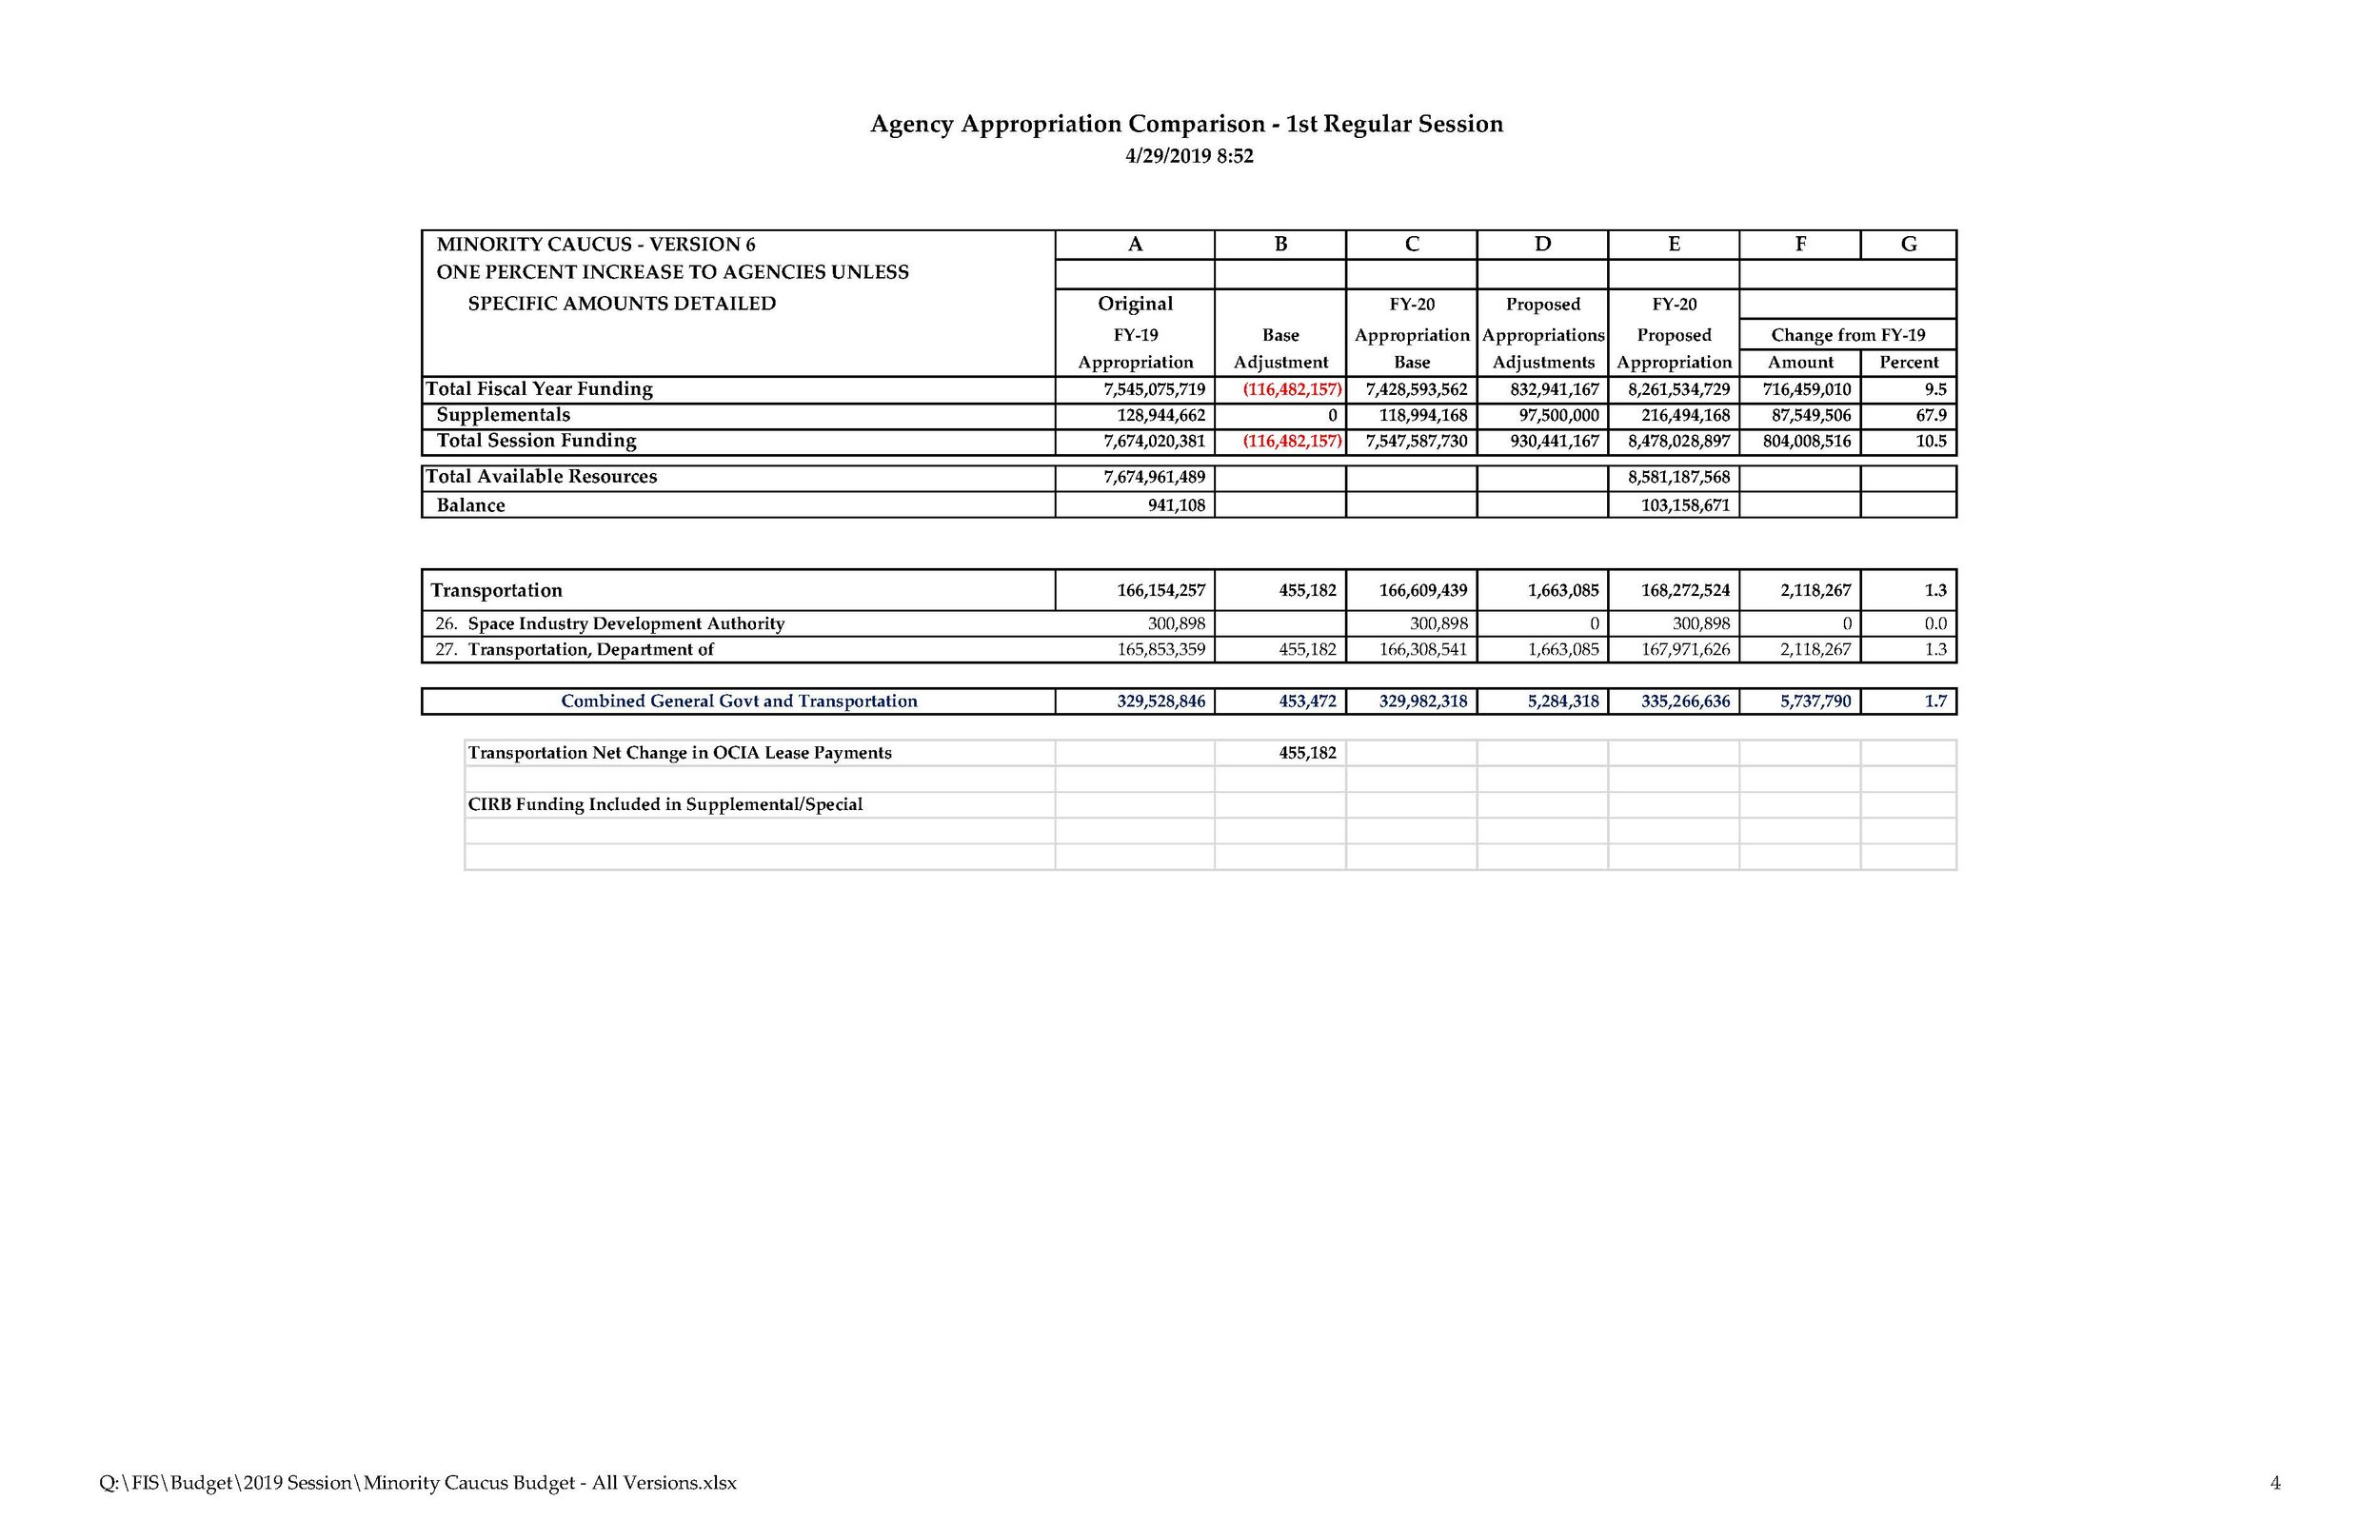 Minority Caucus Budget - All Versions_Page_04.jpg